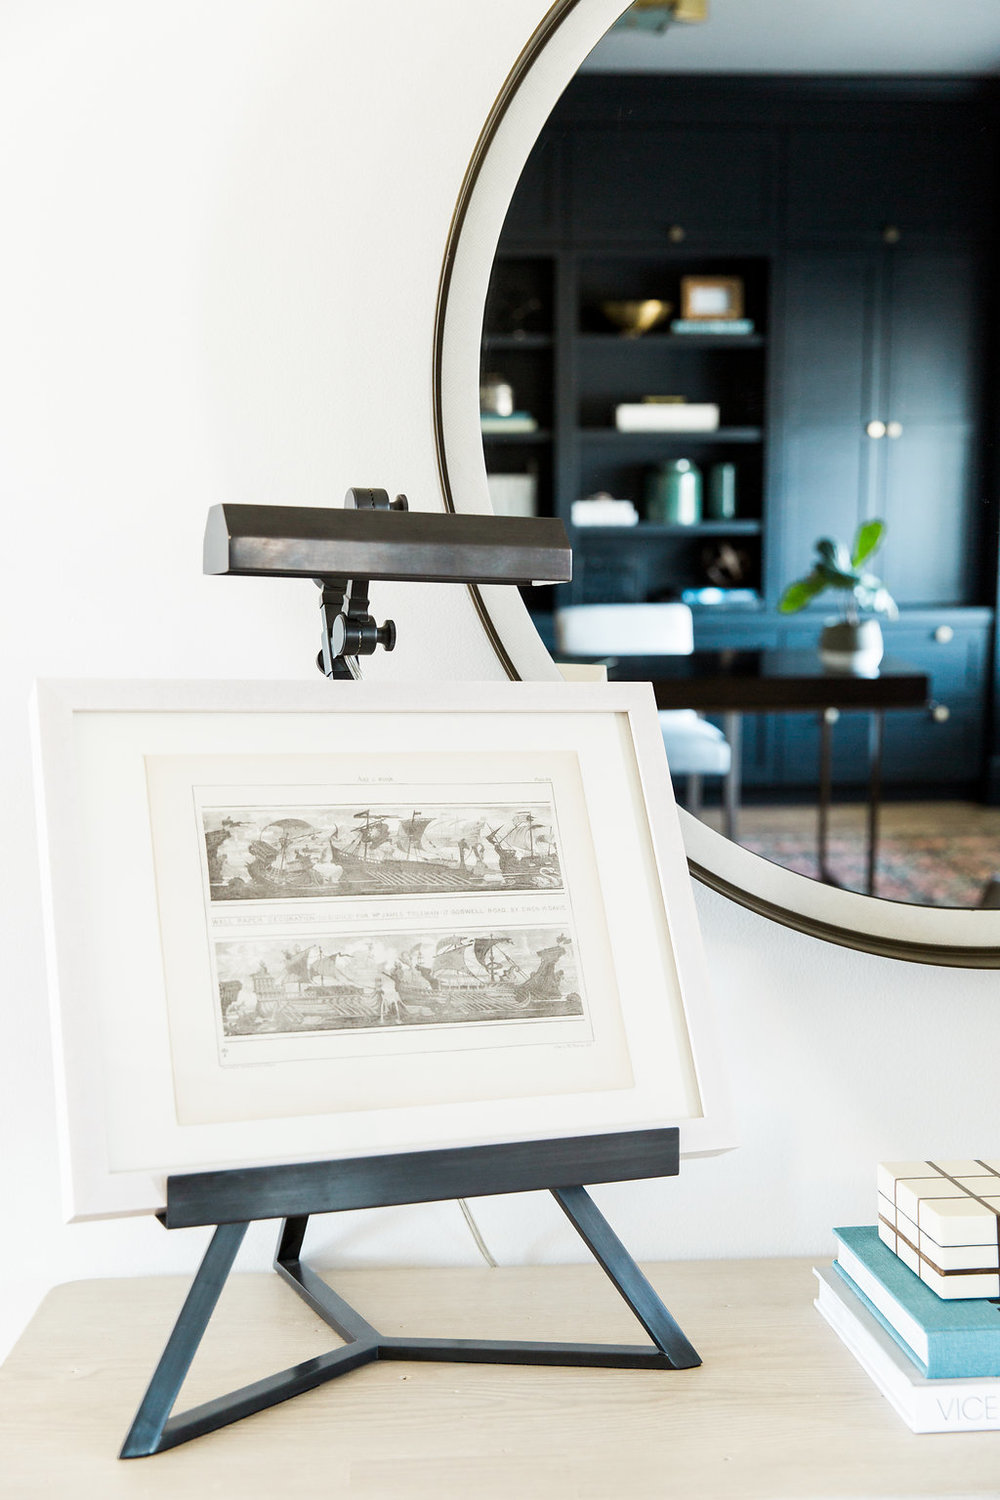 Where to Buy Vintage Art | Studio McGee Blog